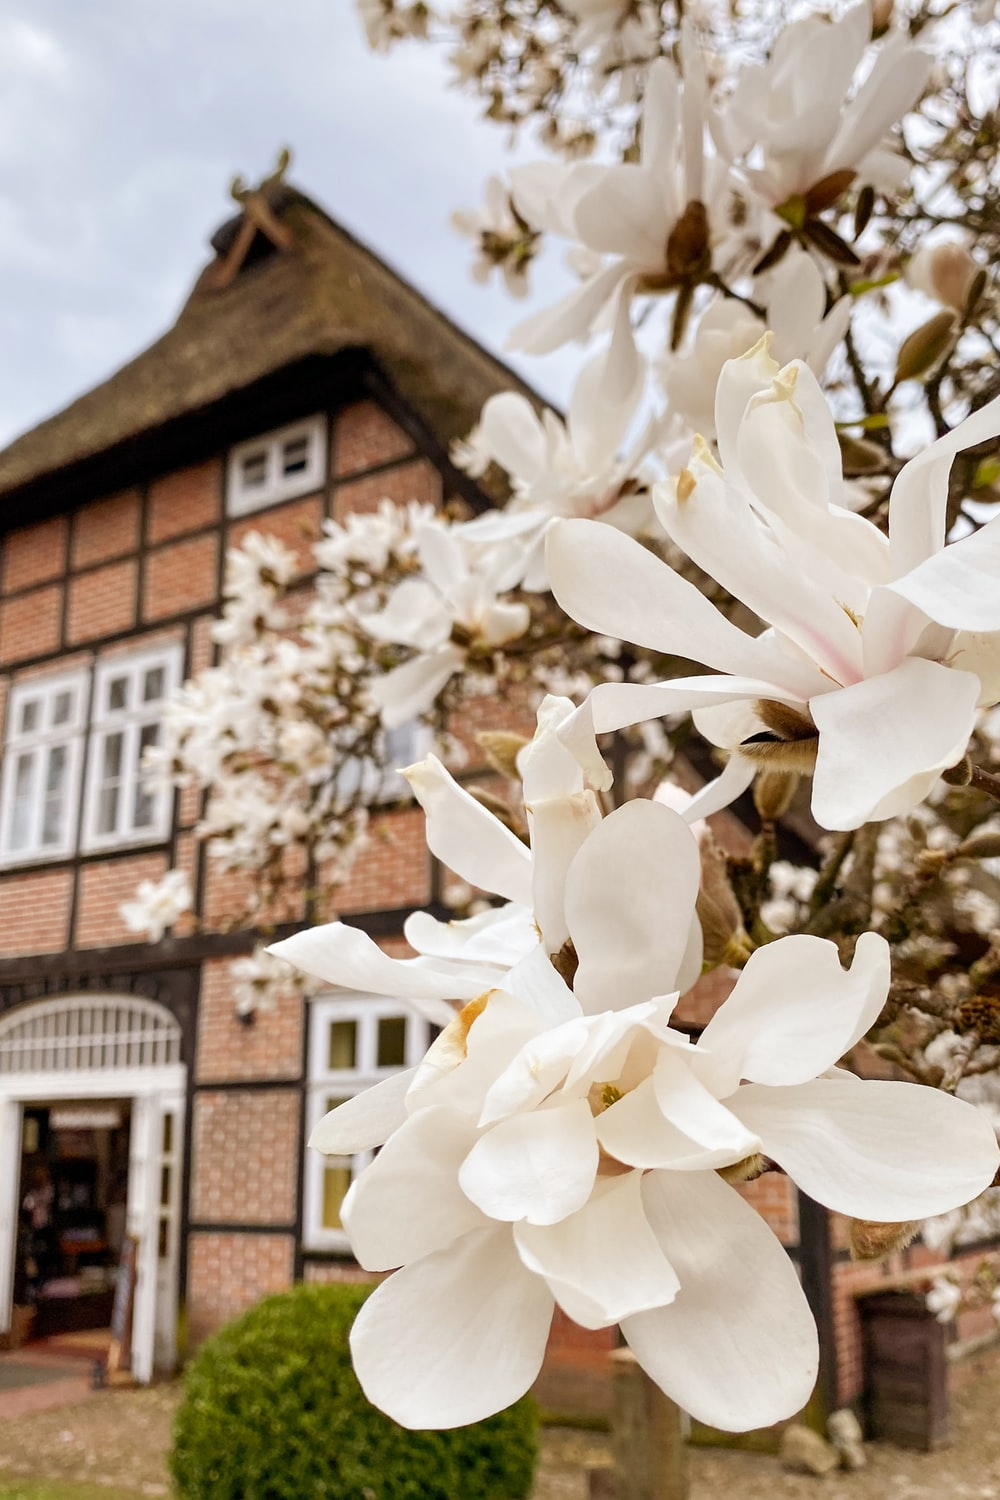 white flowers near brown brick building during daytime